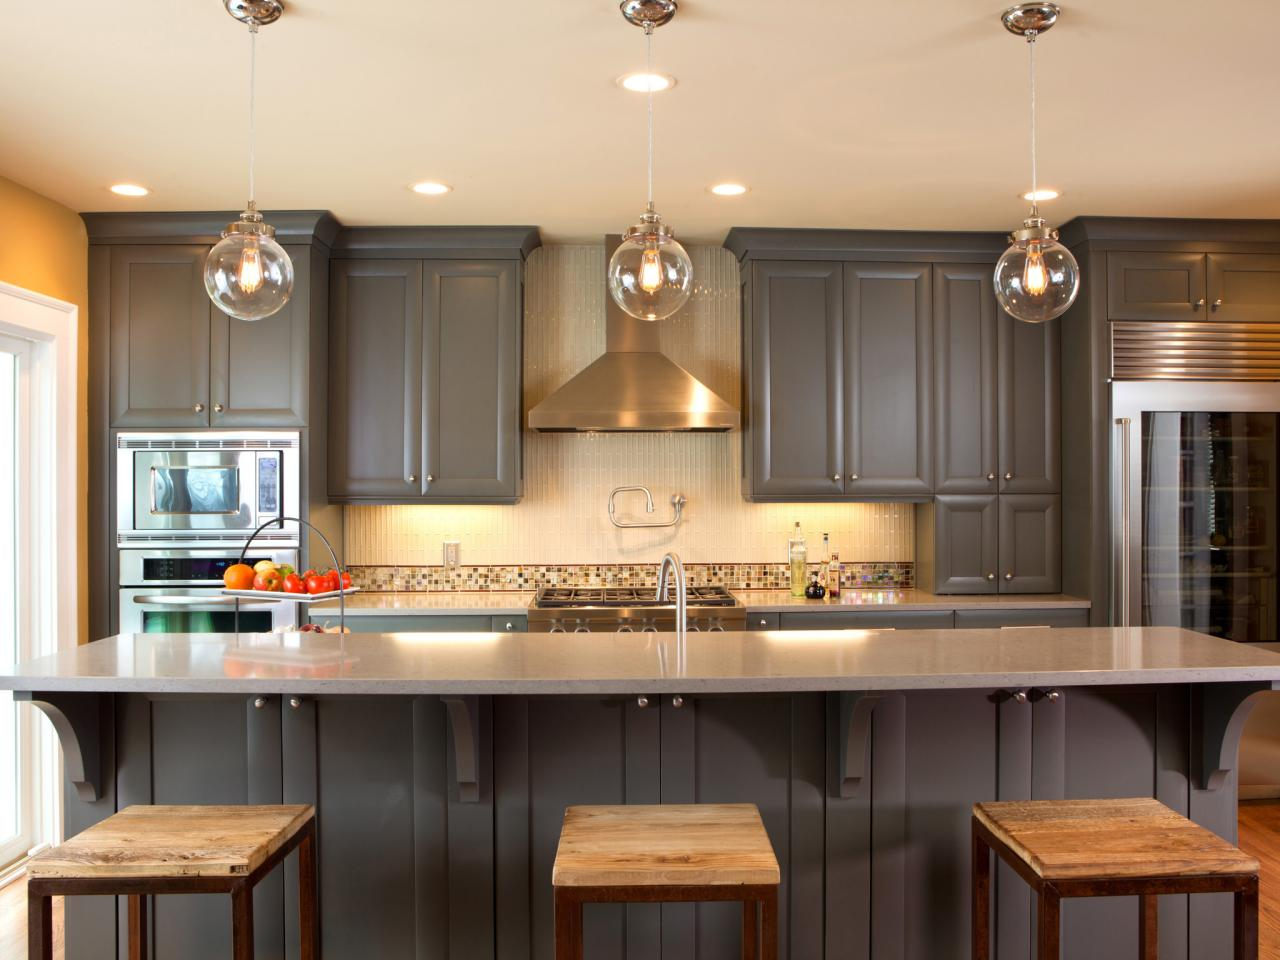 Kitchen Cabinet Paint Ideas Prepossessing Ideas For Painting Kitchen Cabinets  Pictures From Hgtv  Hgtv Design Ideas